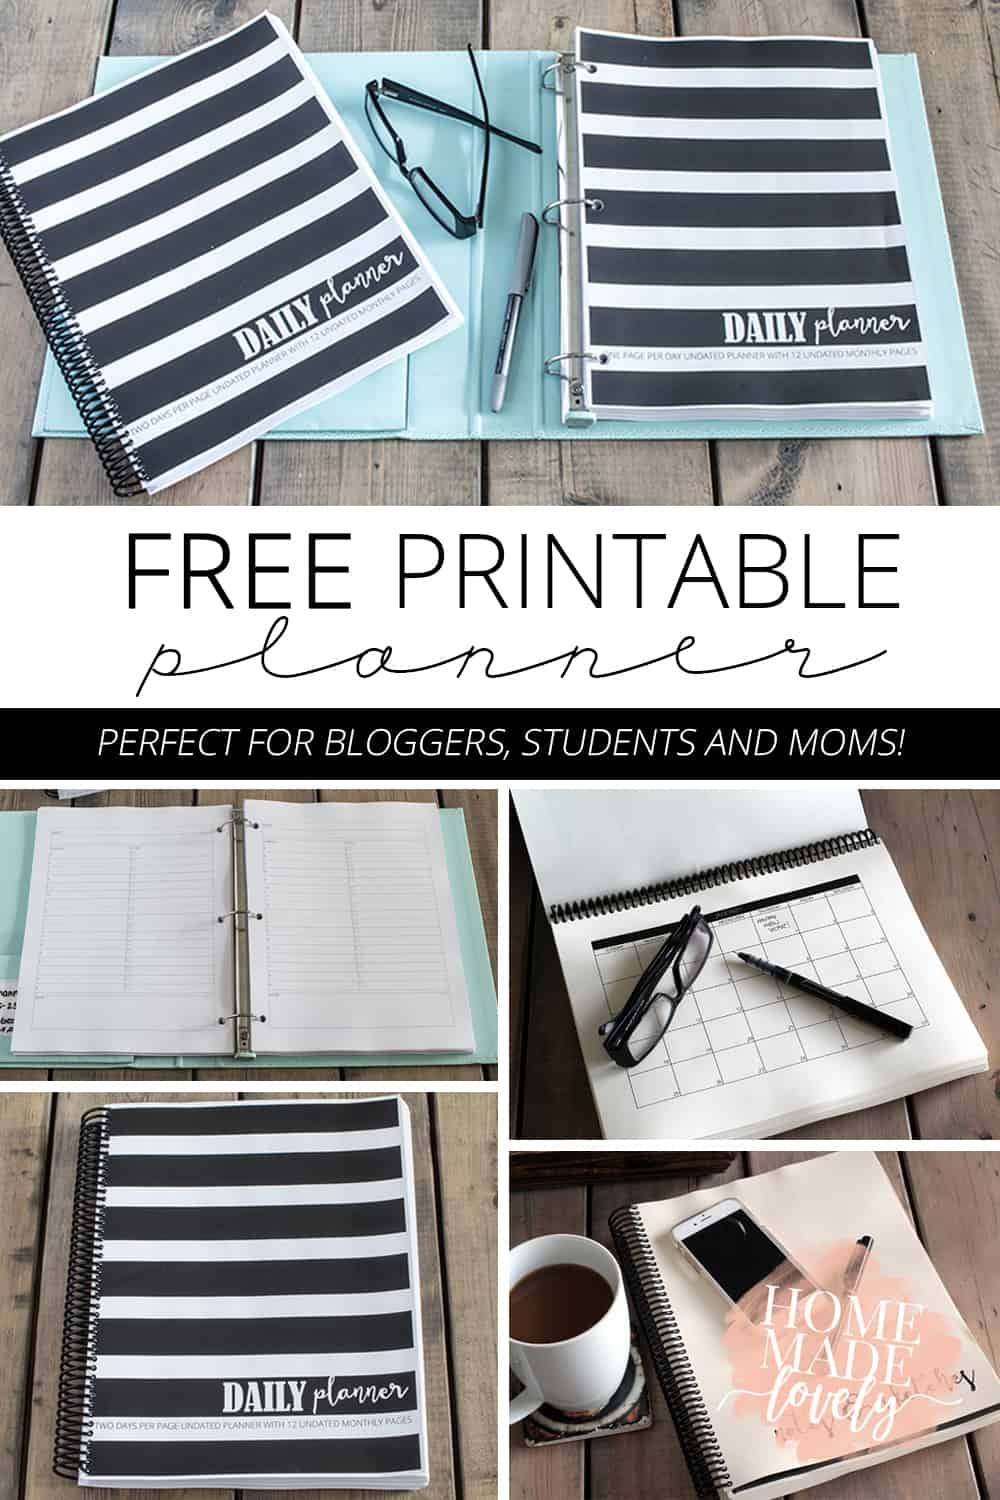 Need a planner, but short on moolah? Here's a free printable planner download for you!